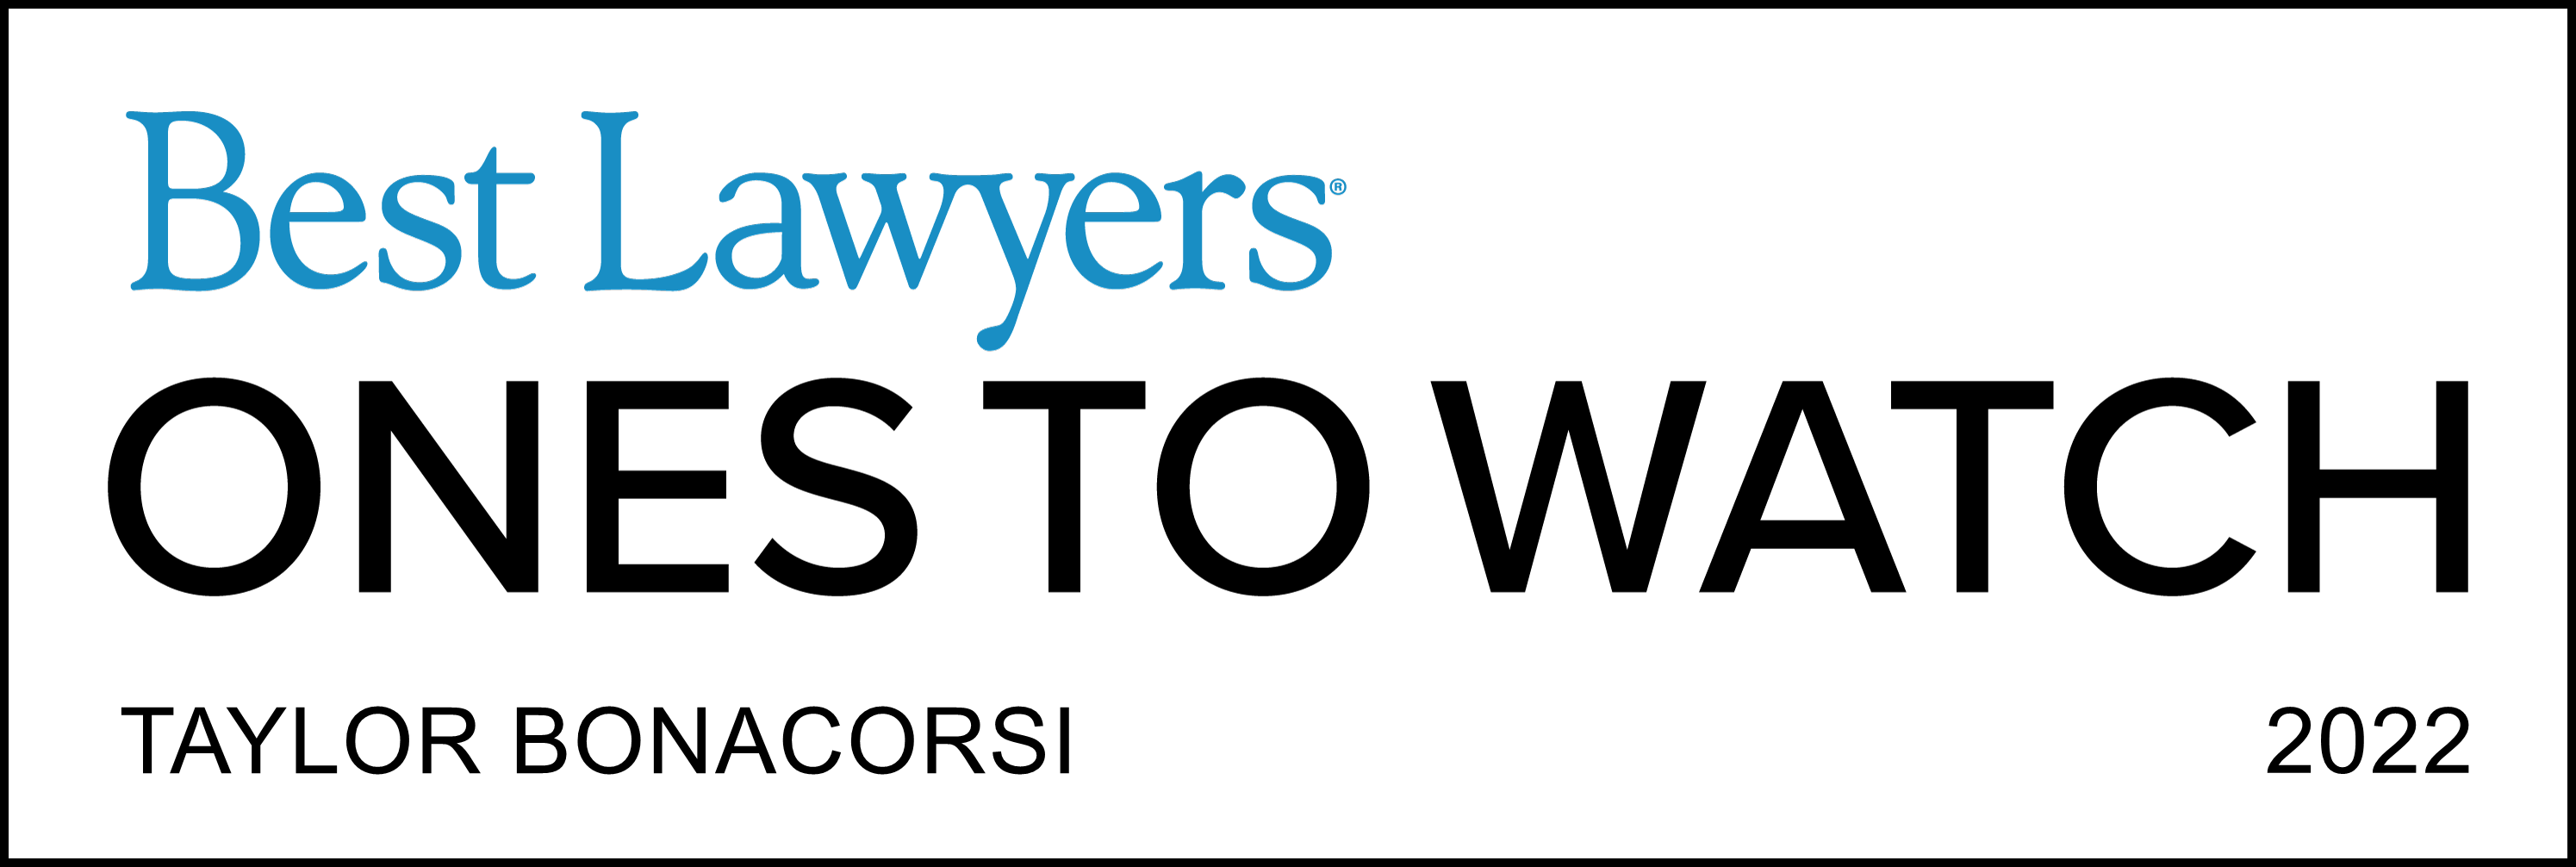 Taylor Bonacorsi Best Lawyers Ones to Watch 2022 Health Care Law